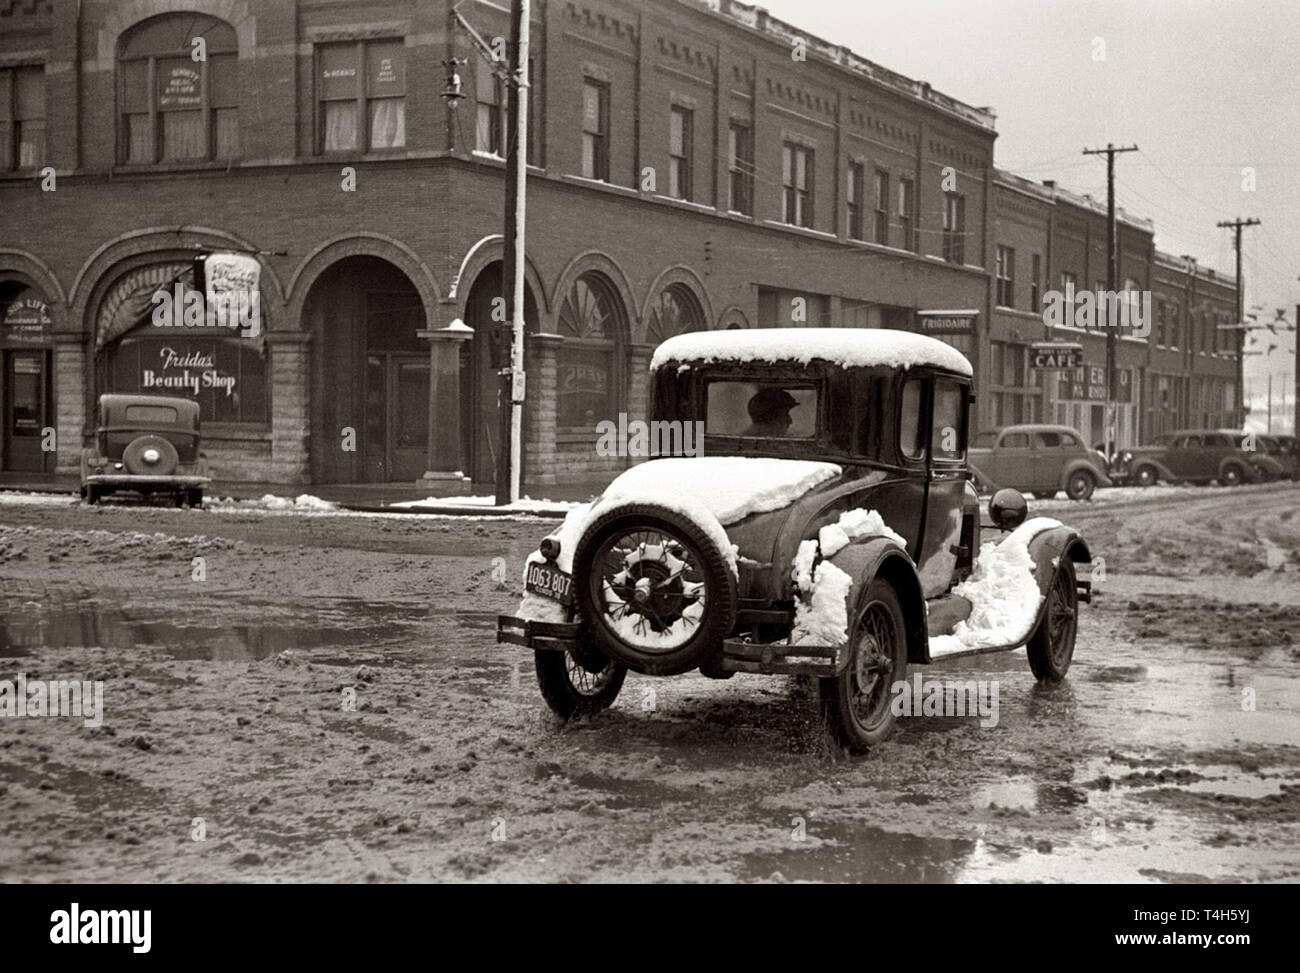 Vintage cars from the 1930s and 40s presented in a photo from the time period - Stock Image